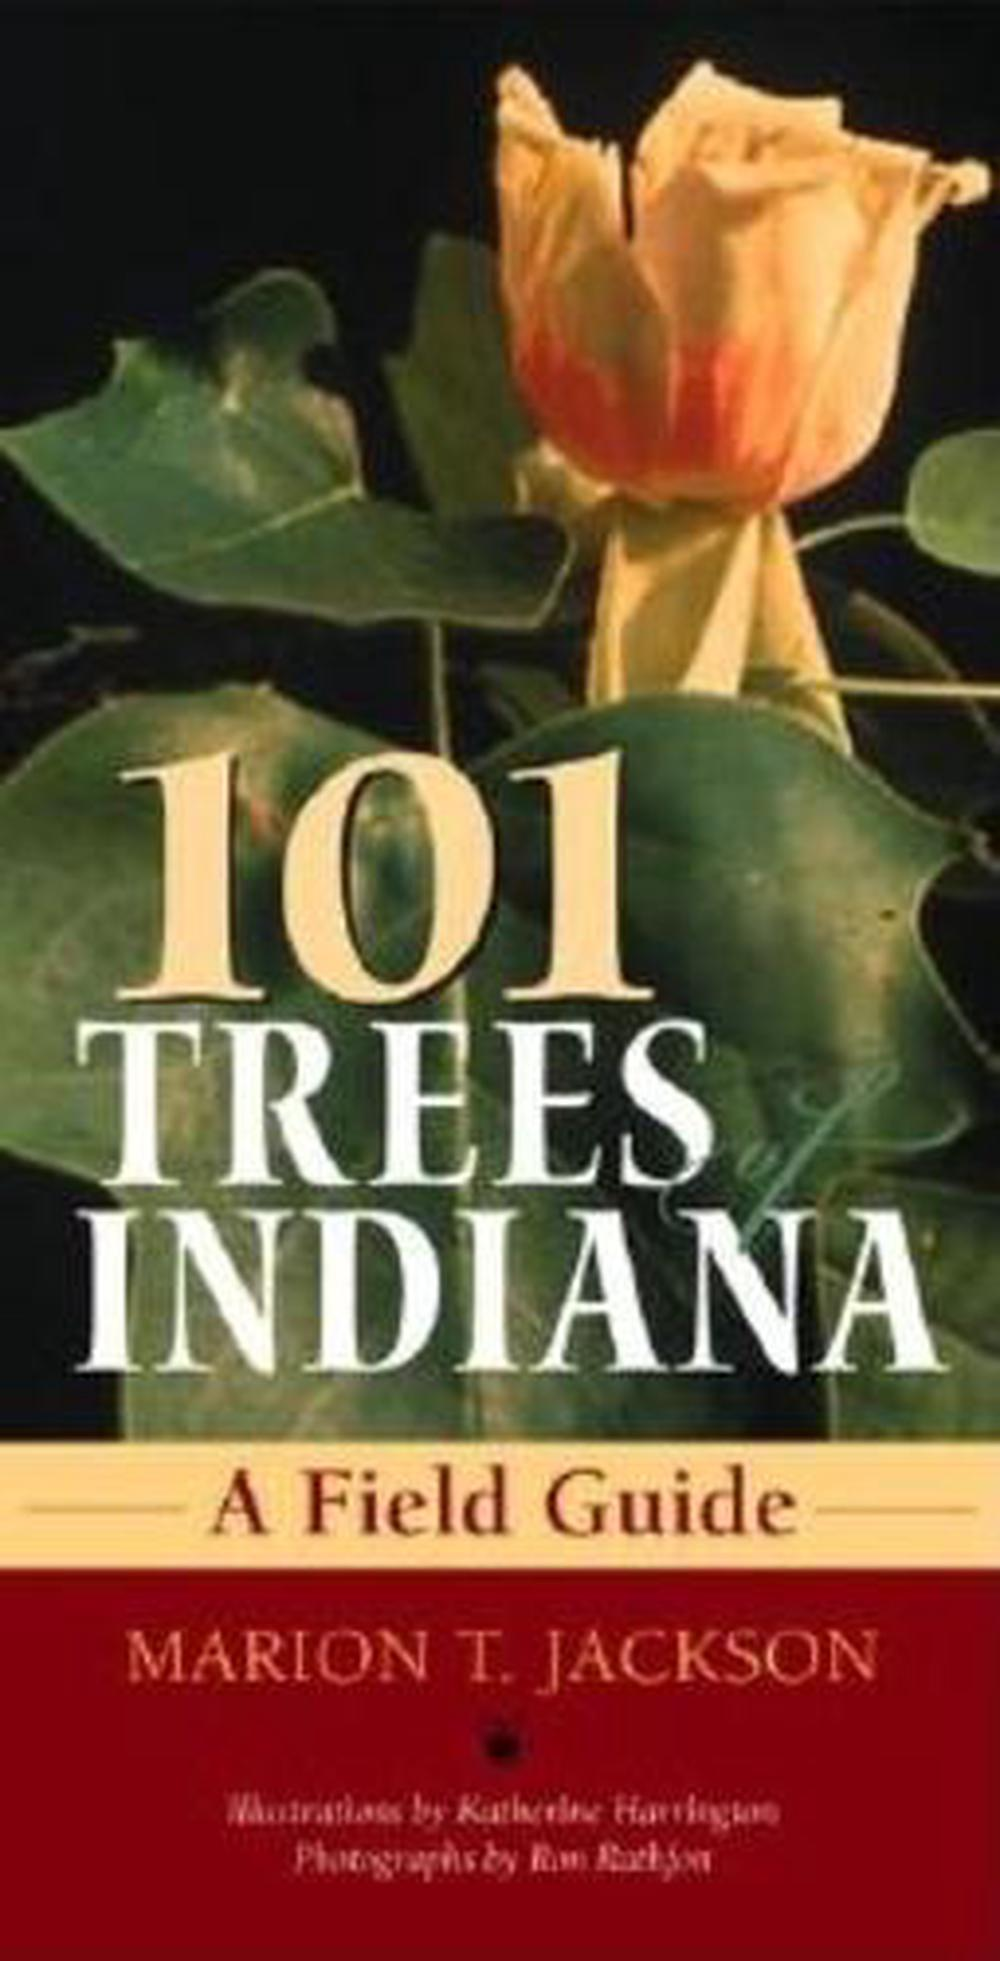 101 Trees of Indiana: A Field Guide